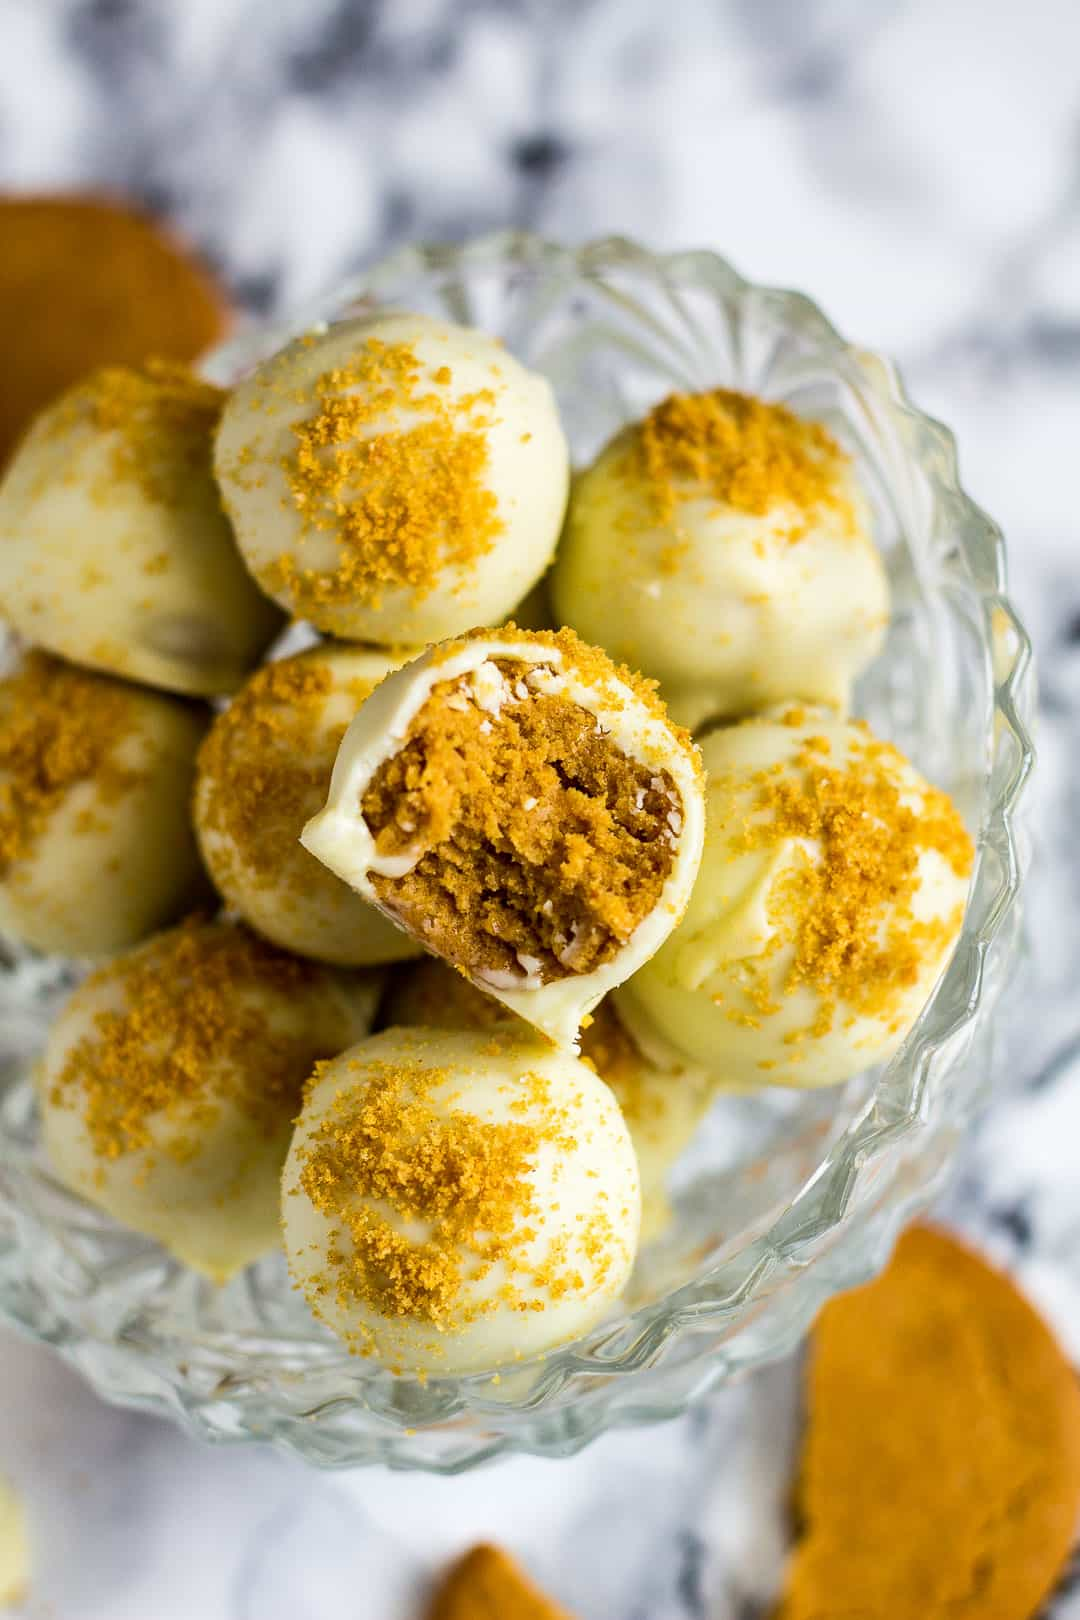 Pumpkin Gingerbread Truffles - Deliciously creamy pumpkin truffles loaded with ginger biscuit crumbs, and coated in white chocolate! | marshasbakingaddiction.com | @marshasbakeblog